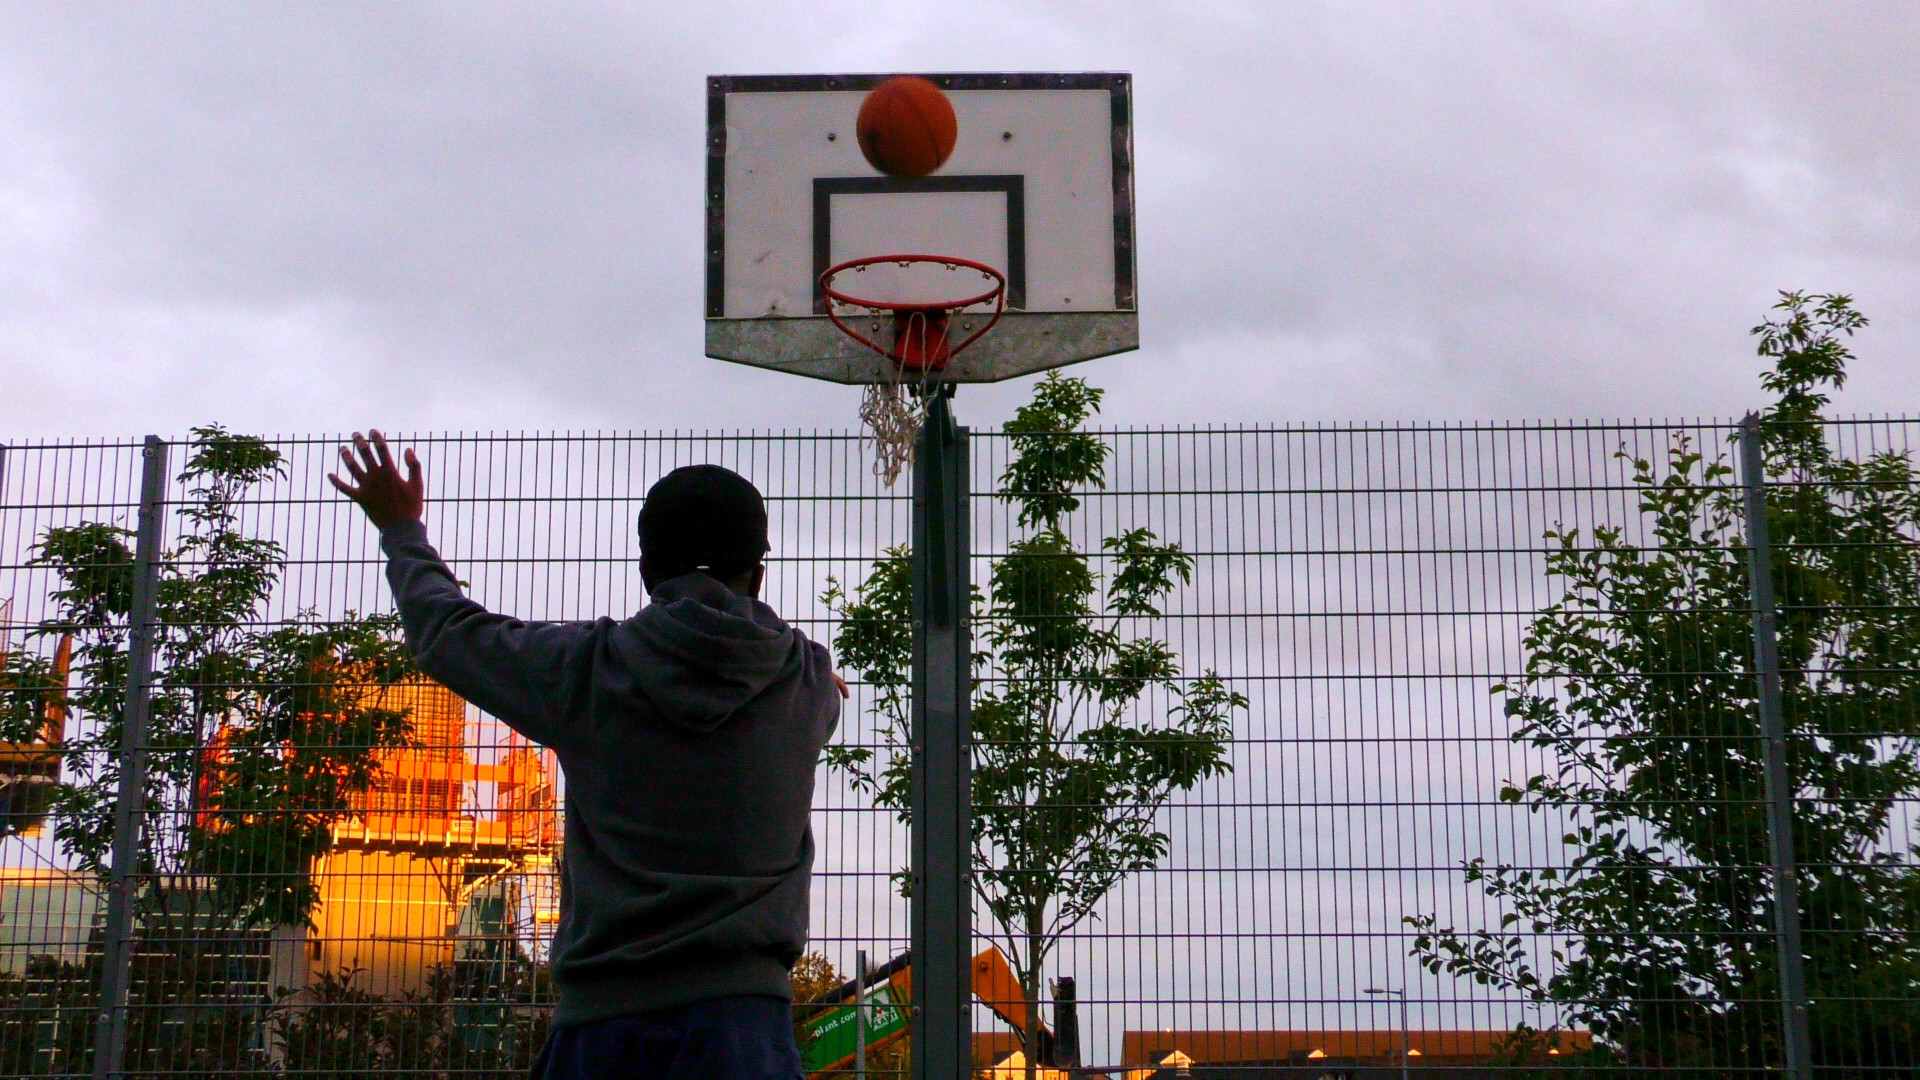 Still from Life Now Music Video of Jepeto Knockz shooting a basketball shot during golden hour, a Movement Films Production